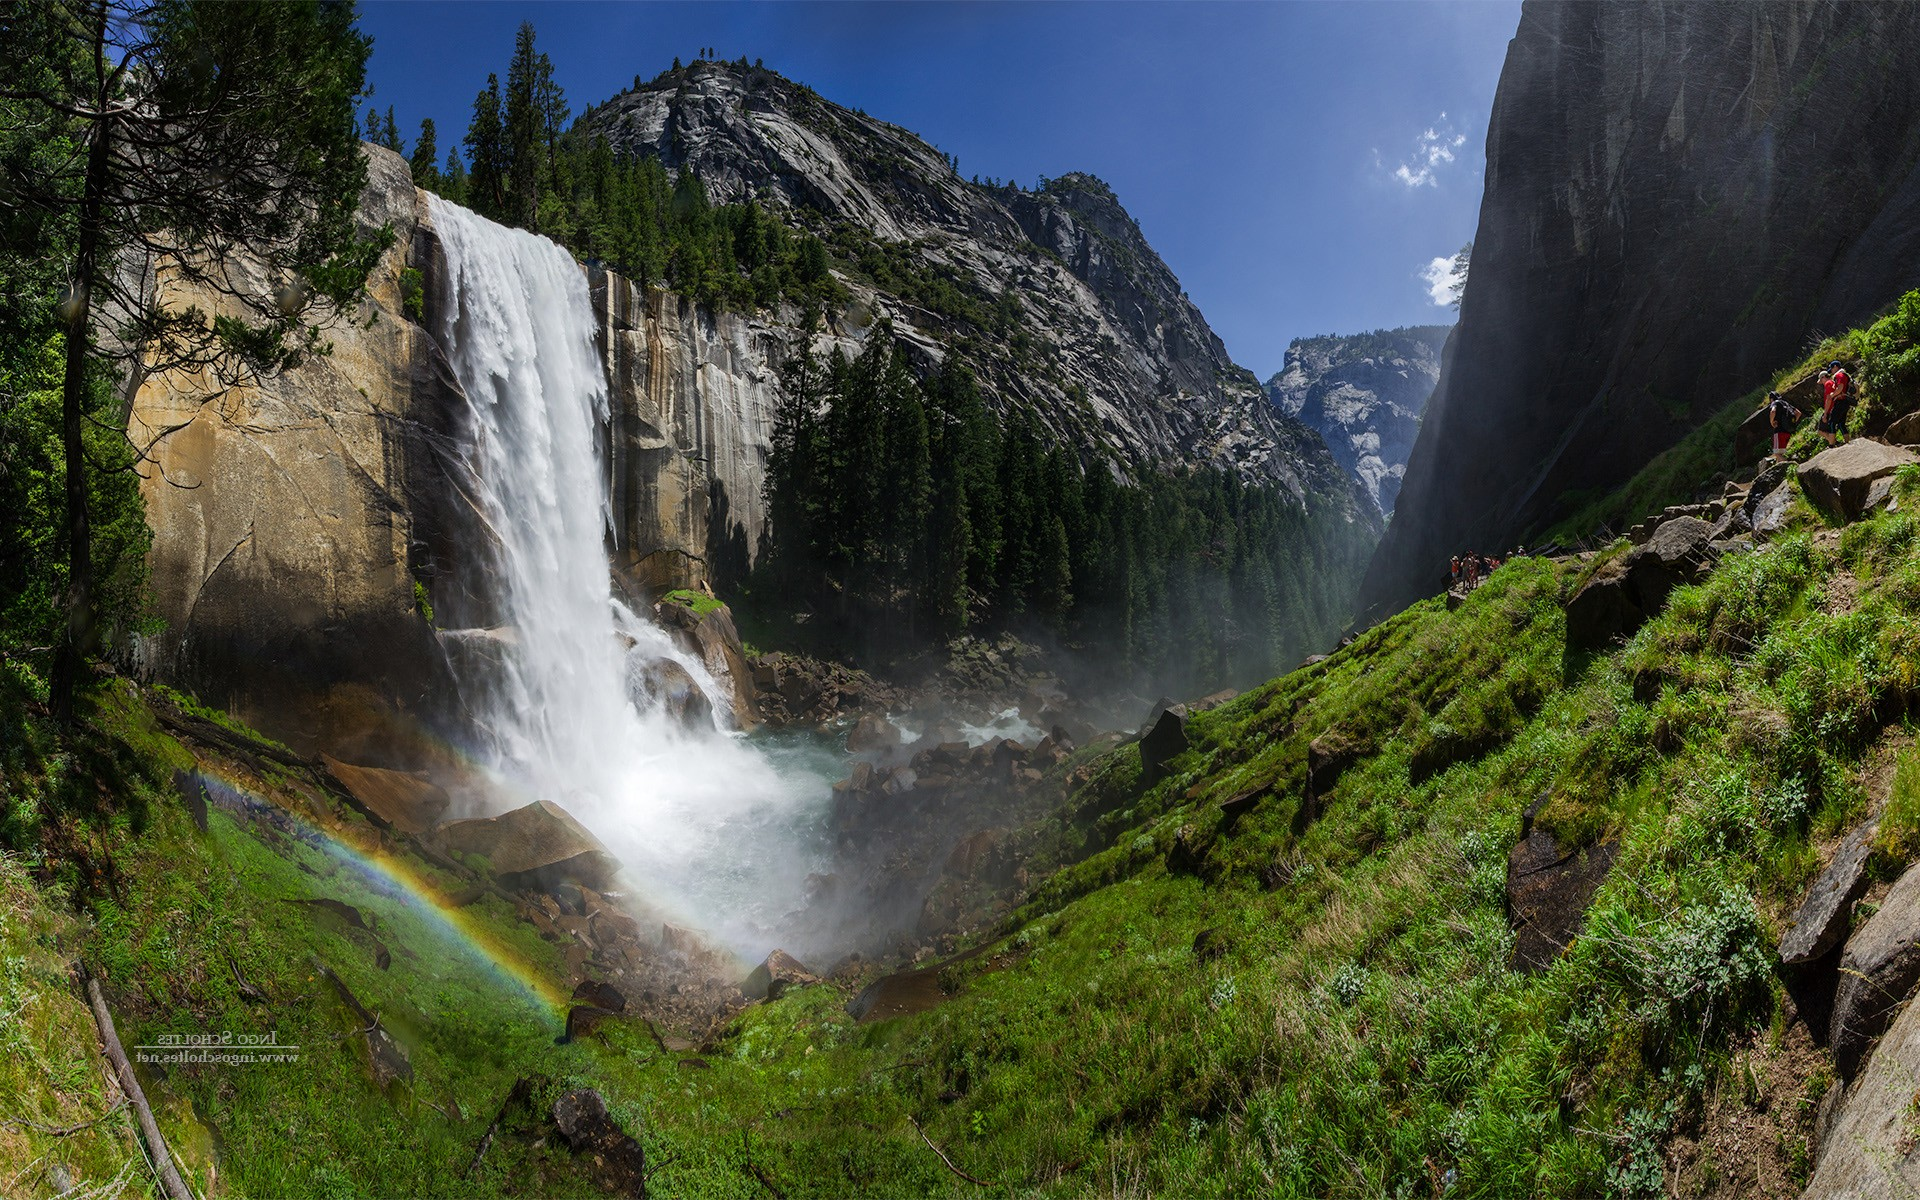 1920x1200 yosemite national park 2 1080p resolution hd 4k - Yosemite national park hd wallpaper ...